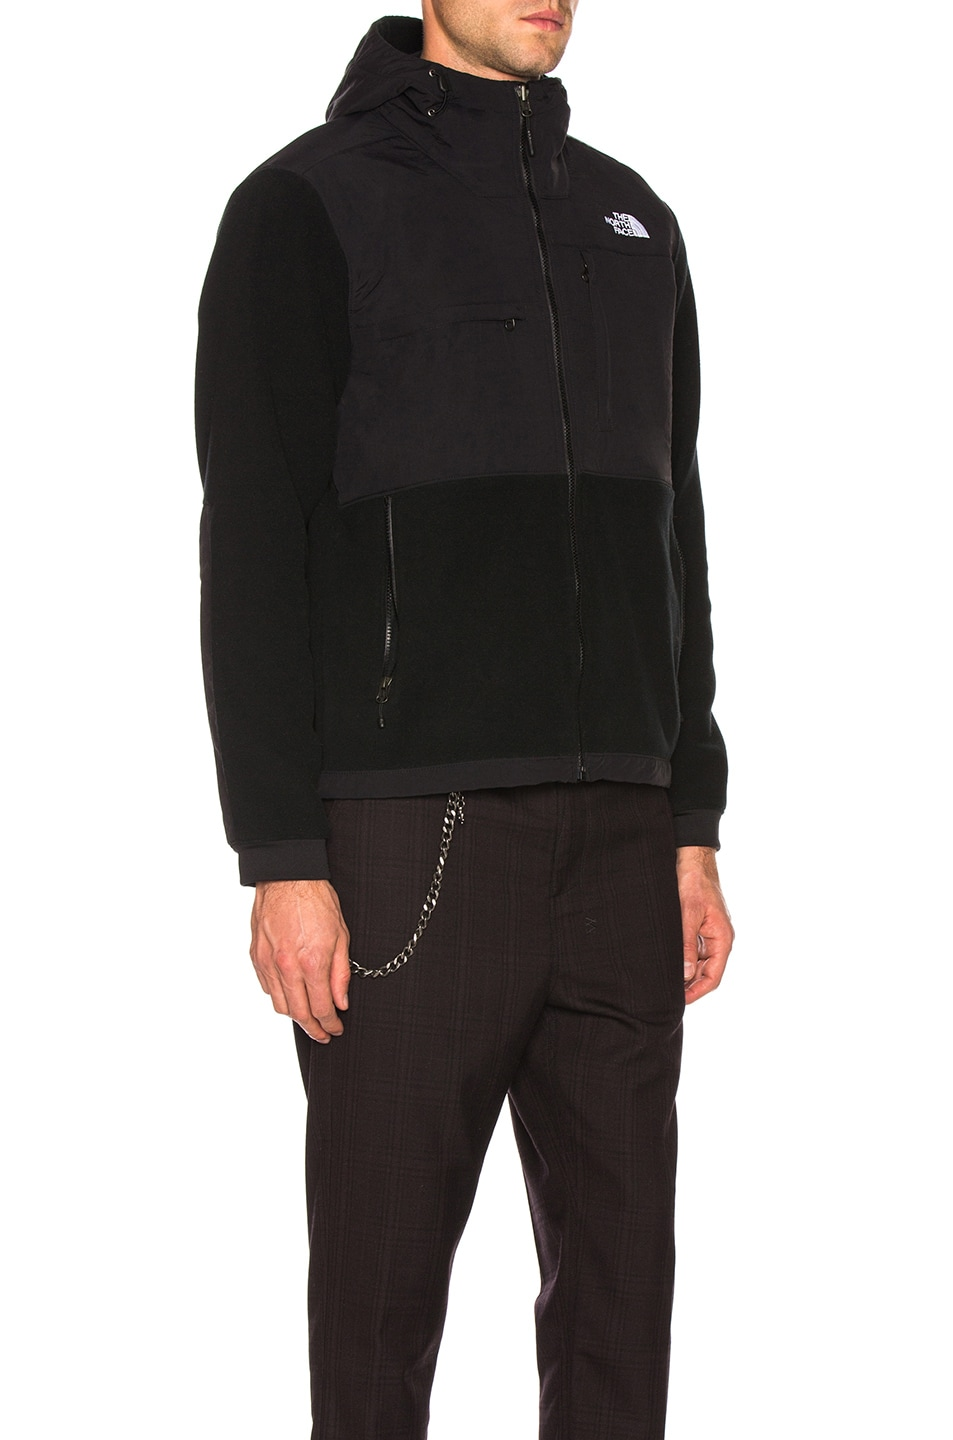 Image 3 of The North Face Denali 2 Hoodie in TNF Black